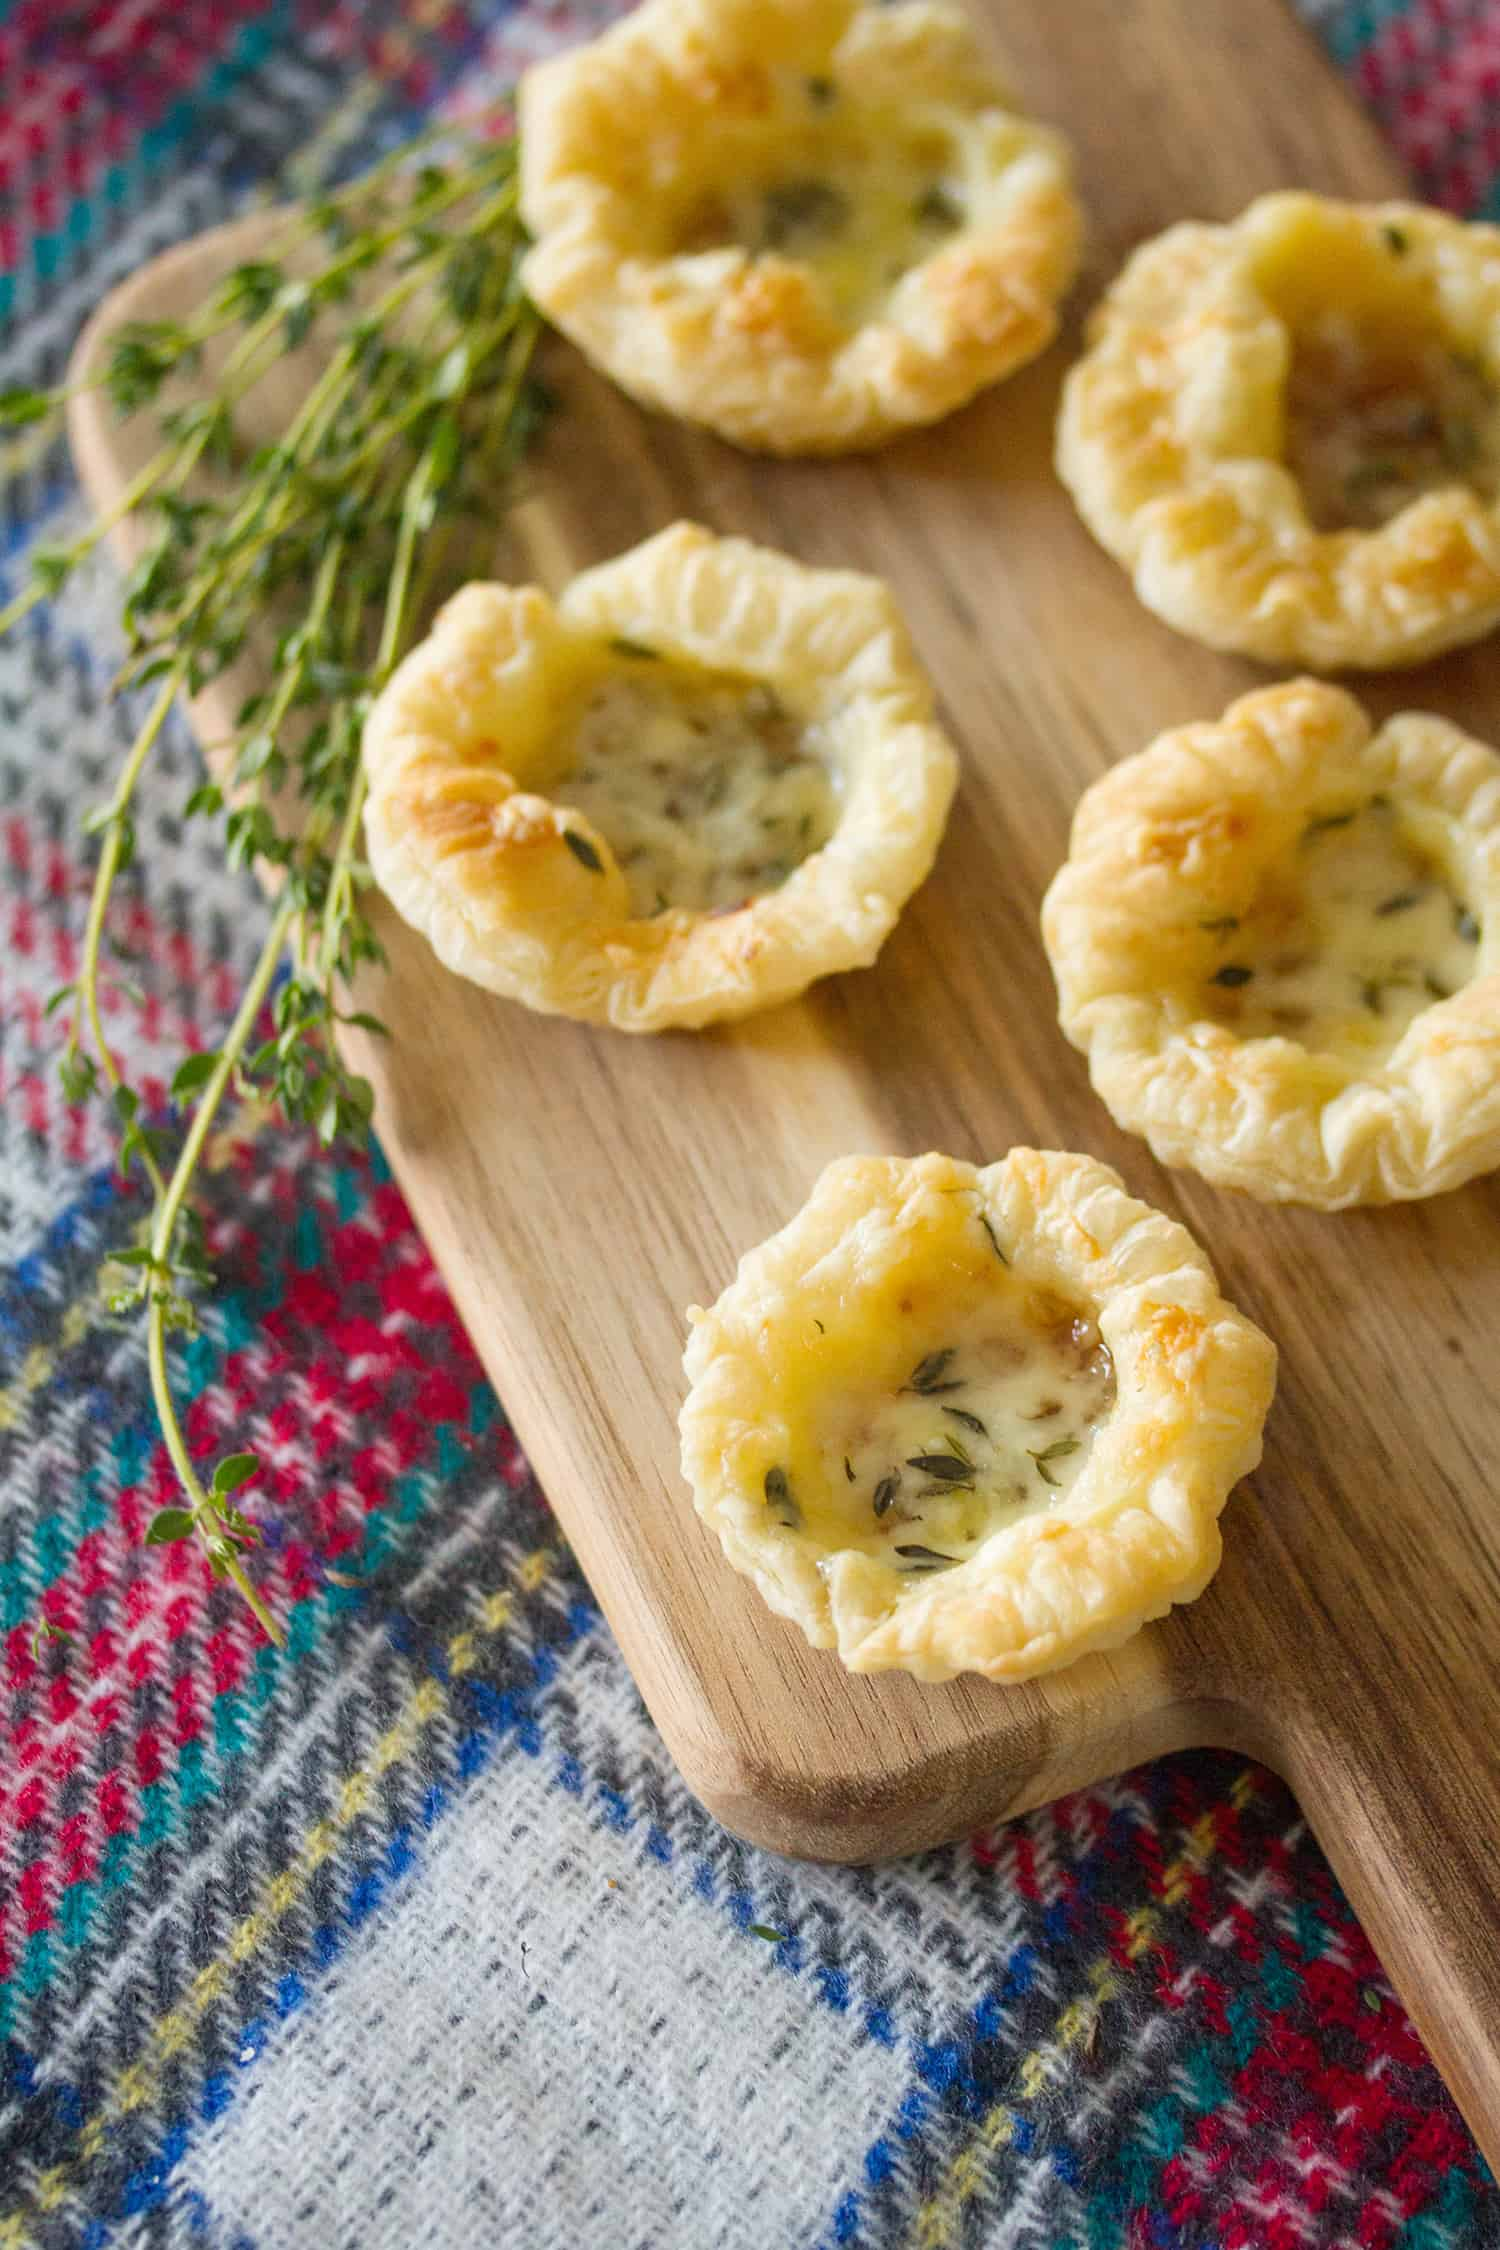 Easy Peasy, Fig and Cheesy: Fig and Cheese Tartlets